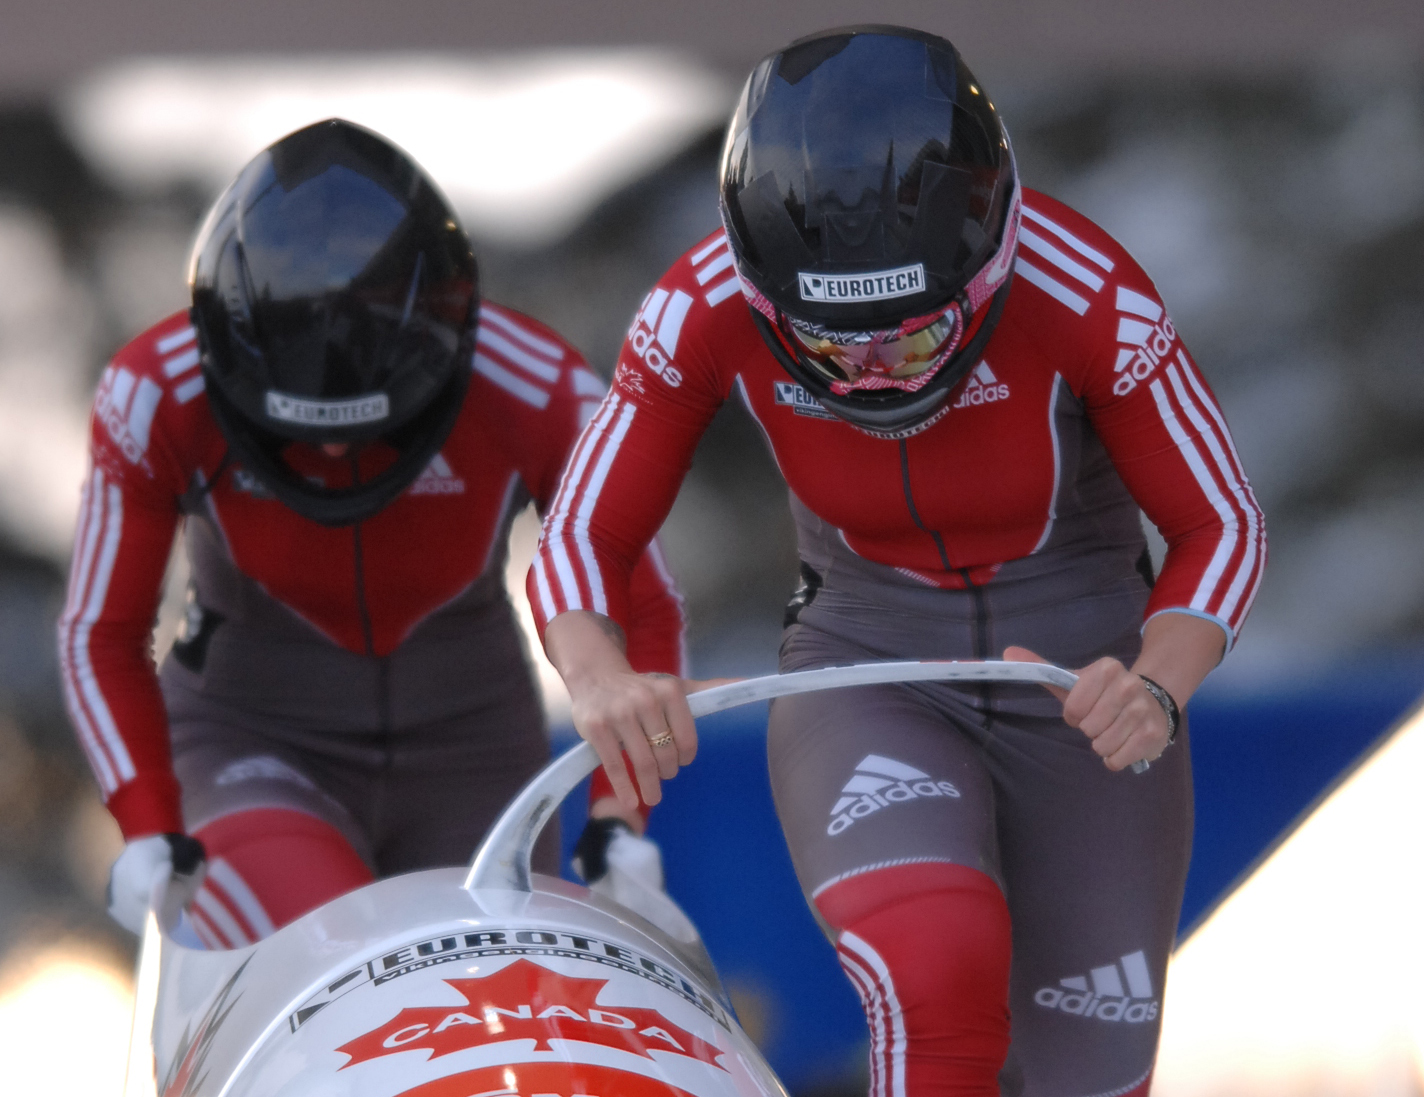 Kaillie Humphries, right, and Chelsea Valois during the World Cup race in Innsbruck, Au.tria,